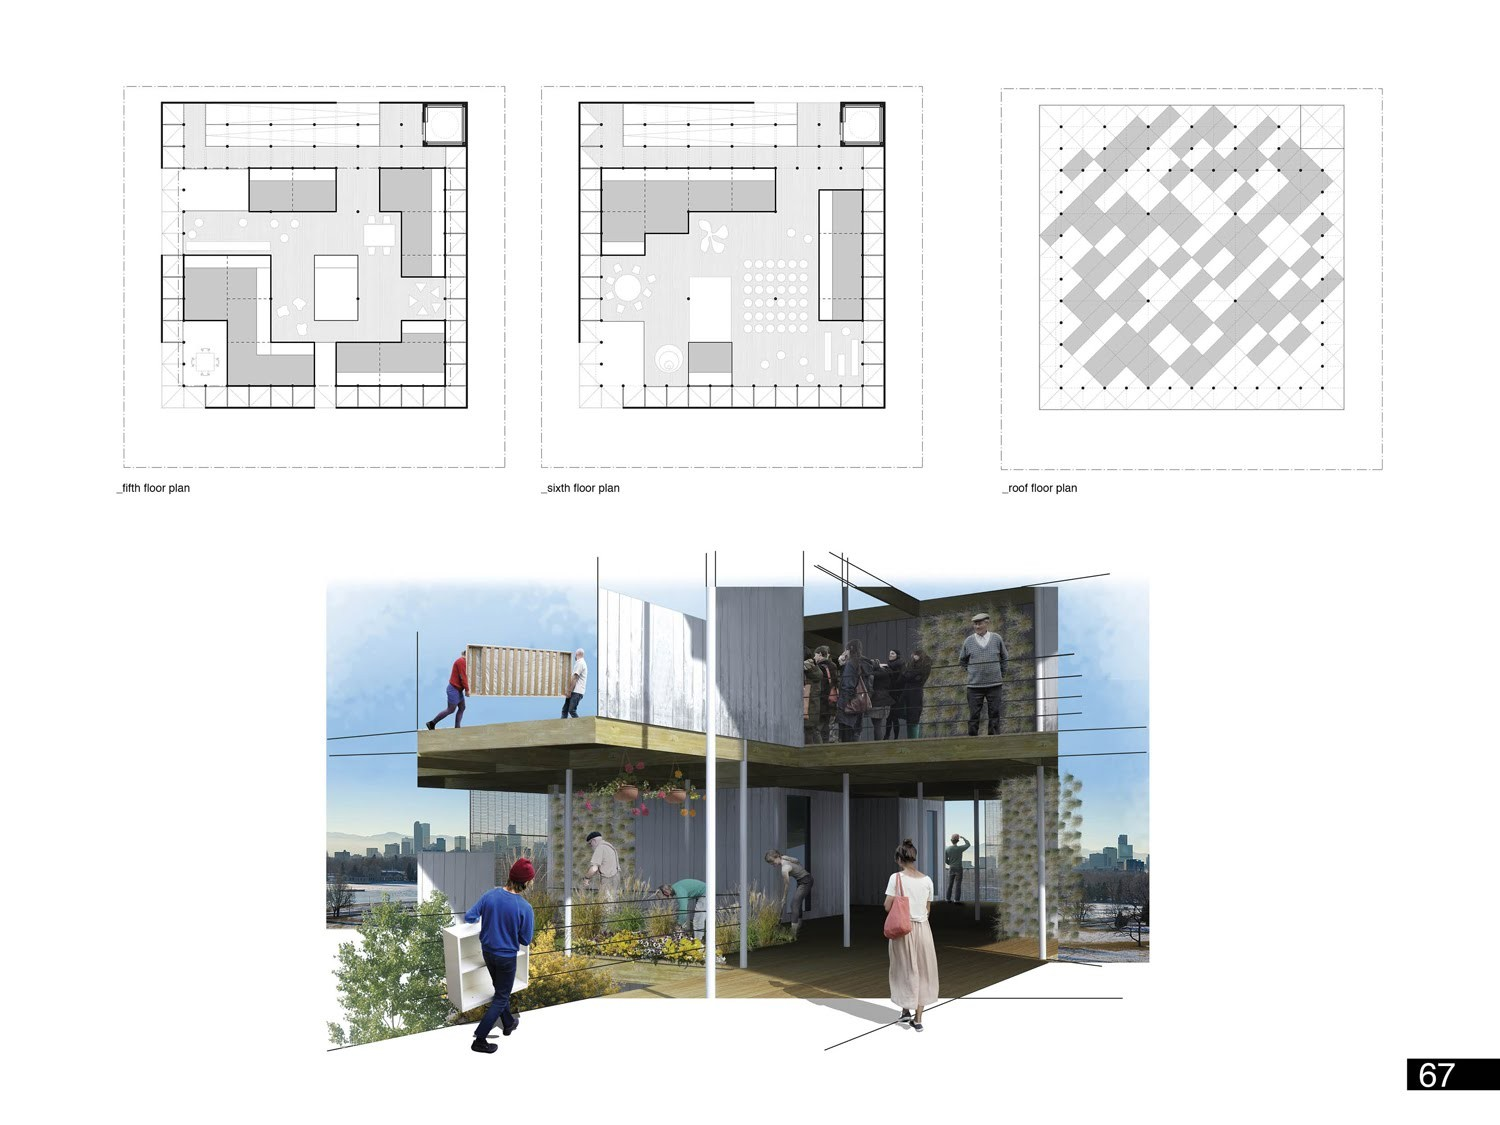 Micro Housing Ideas Competition 2013 Winners Announced | ArchDaily